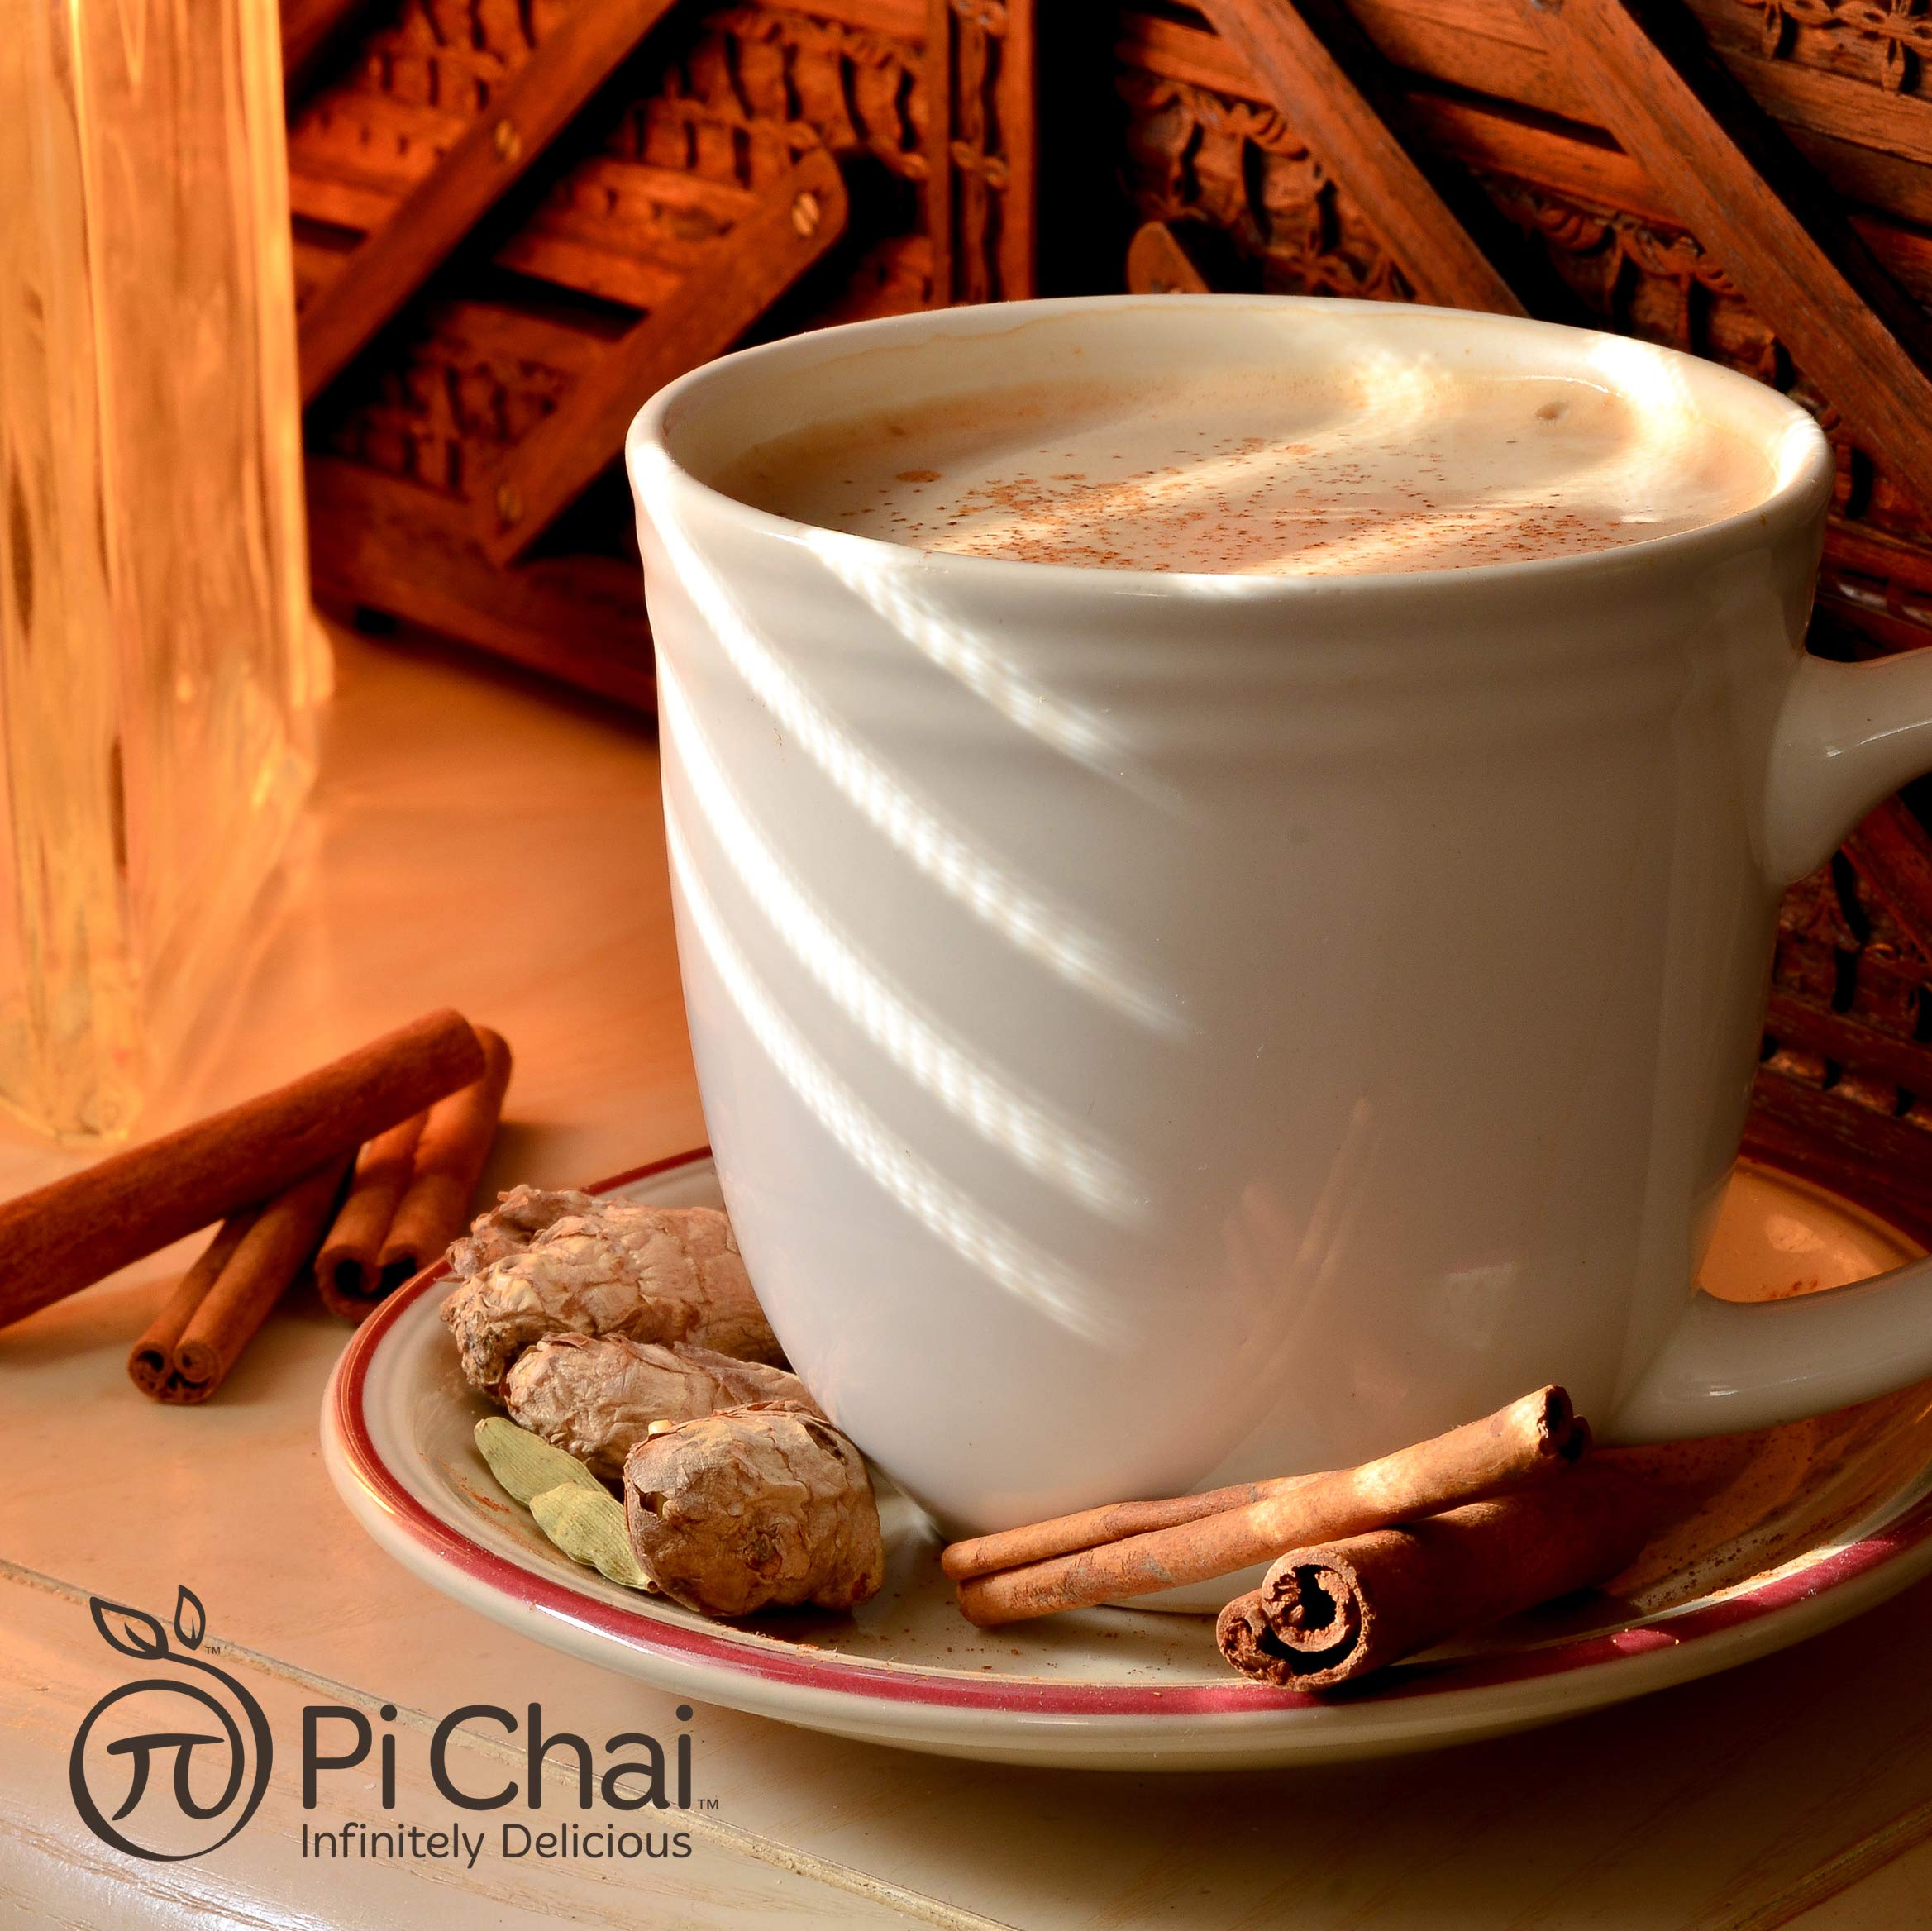 Pi Chai Original, Chai Tea Latte Mix, Black Tea, Exotic Spices, 4.02 Pound by Pi Chai (Image #5)